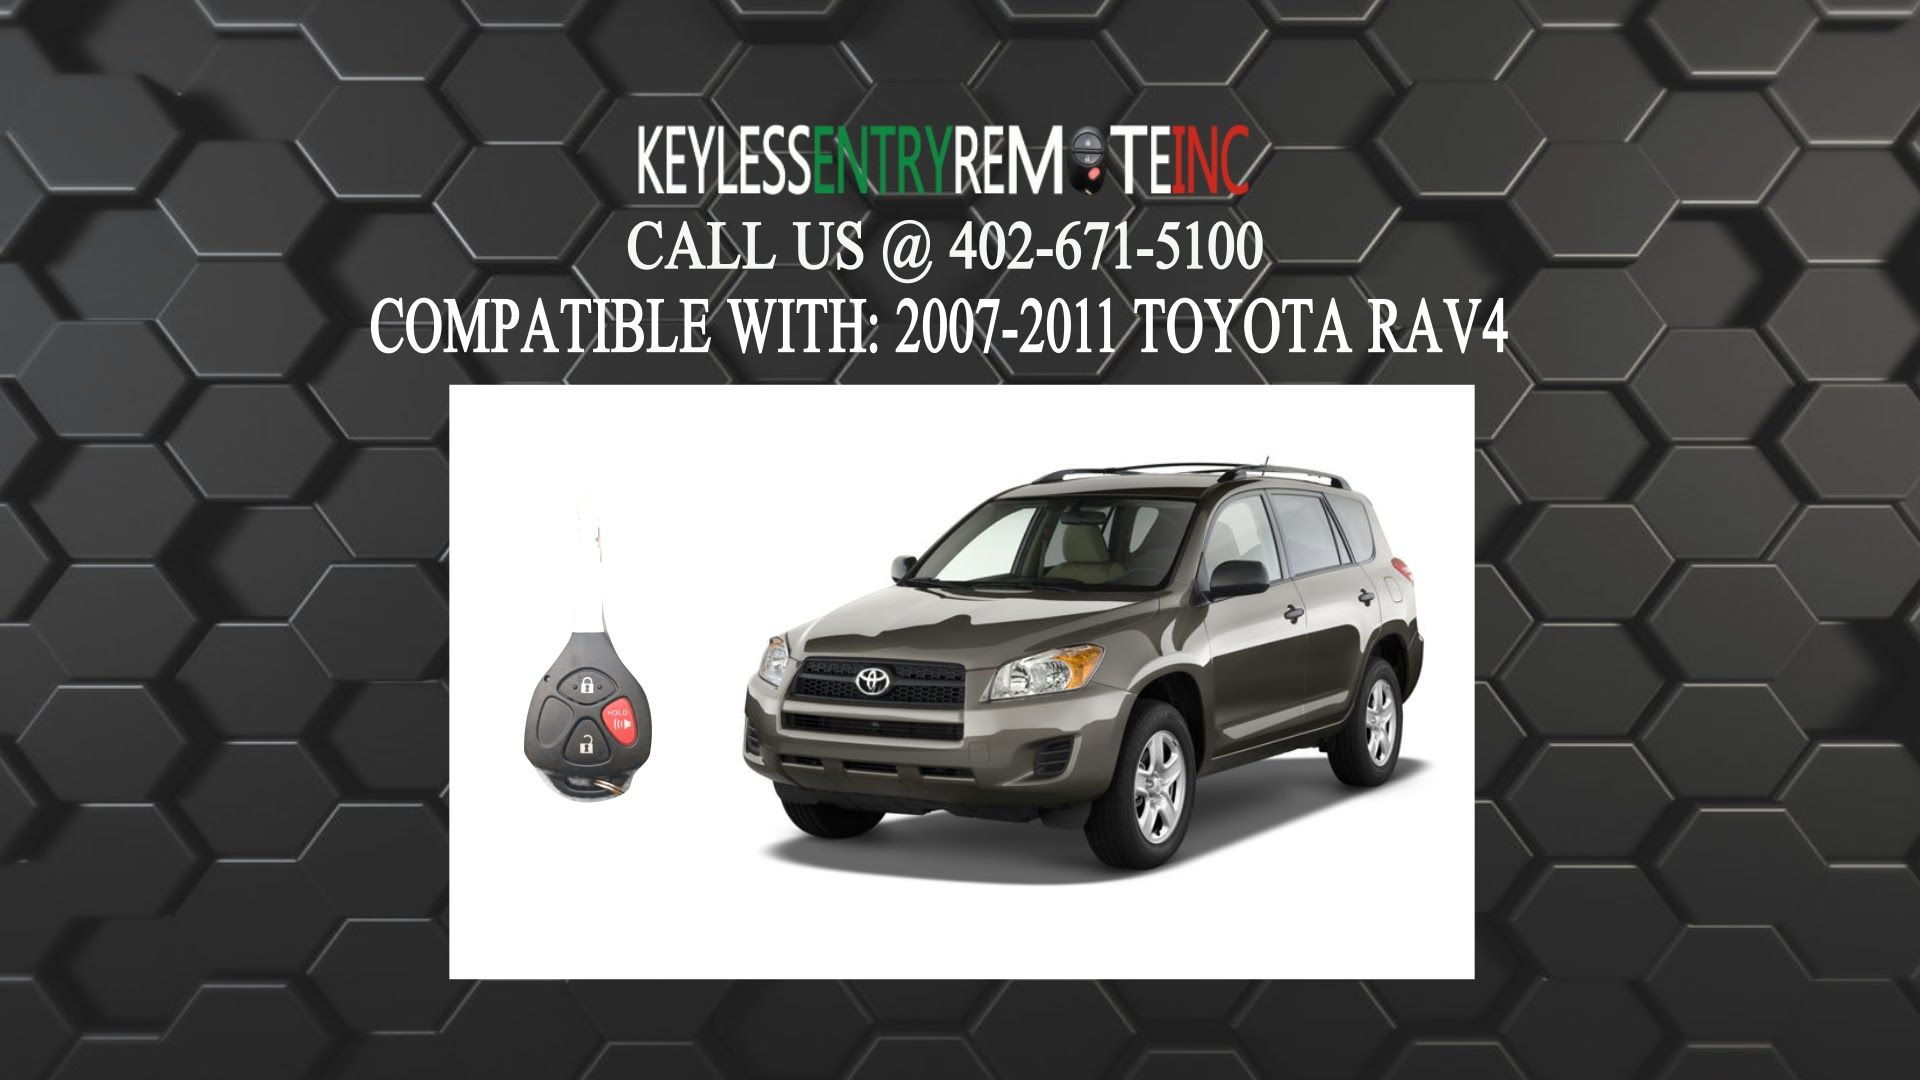 How To Replace Toyota Rav4 Key Fob Battery 2007 2008 2009 2010 2011 Toyota Rav4 Volkswagen Car Battery Hacks